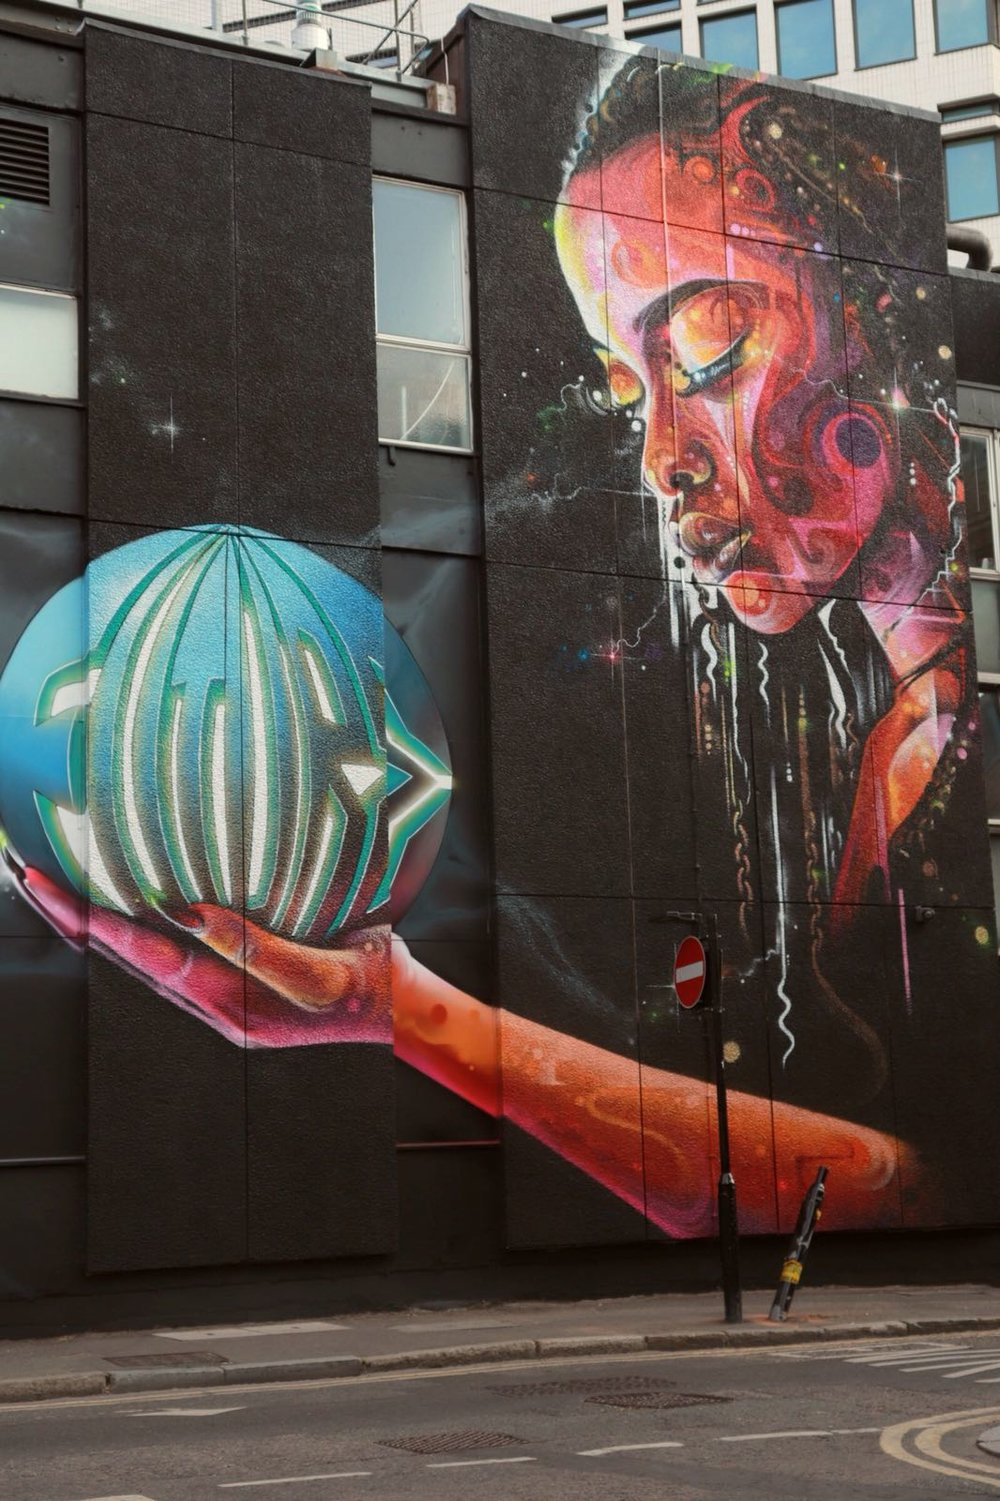 Talented local street artists have added their mark just around the corner. Art by Mr Cenz